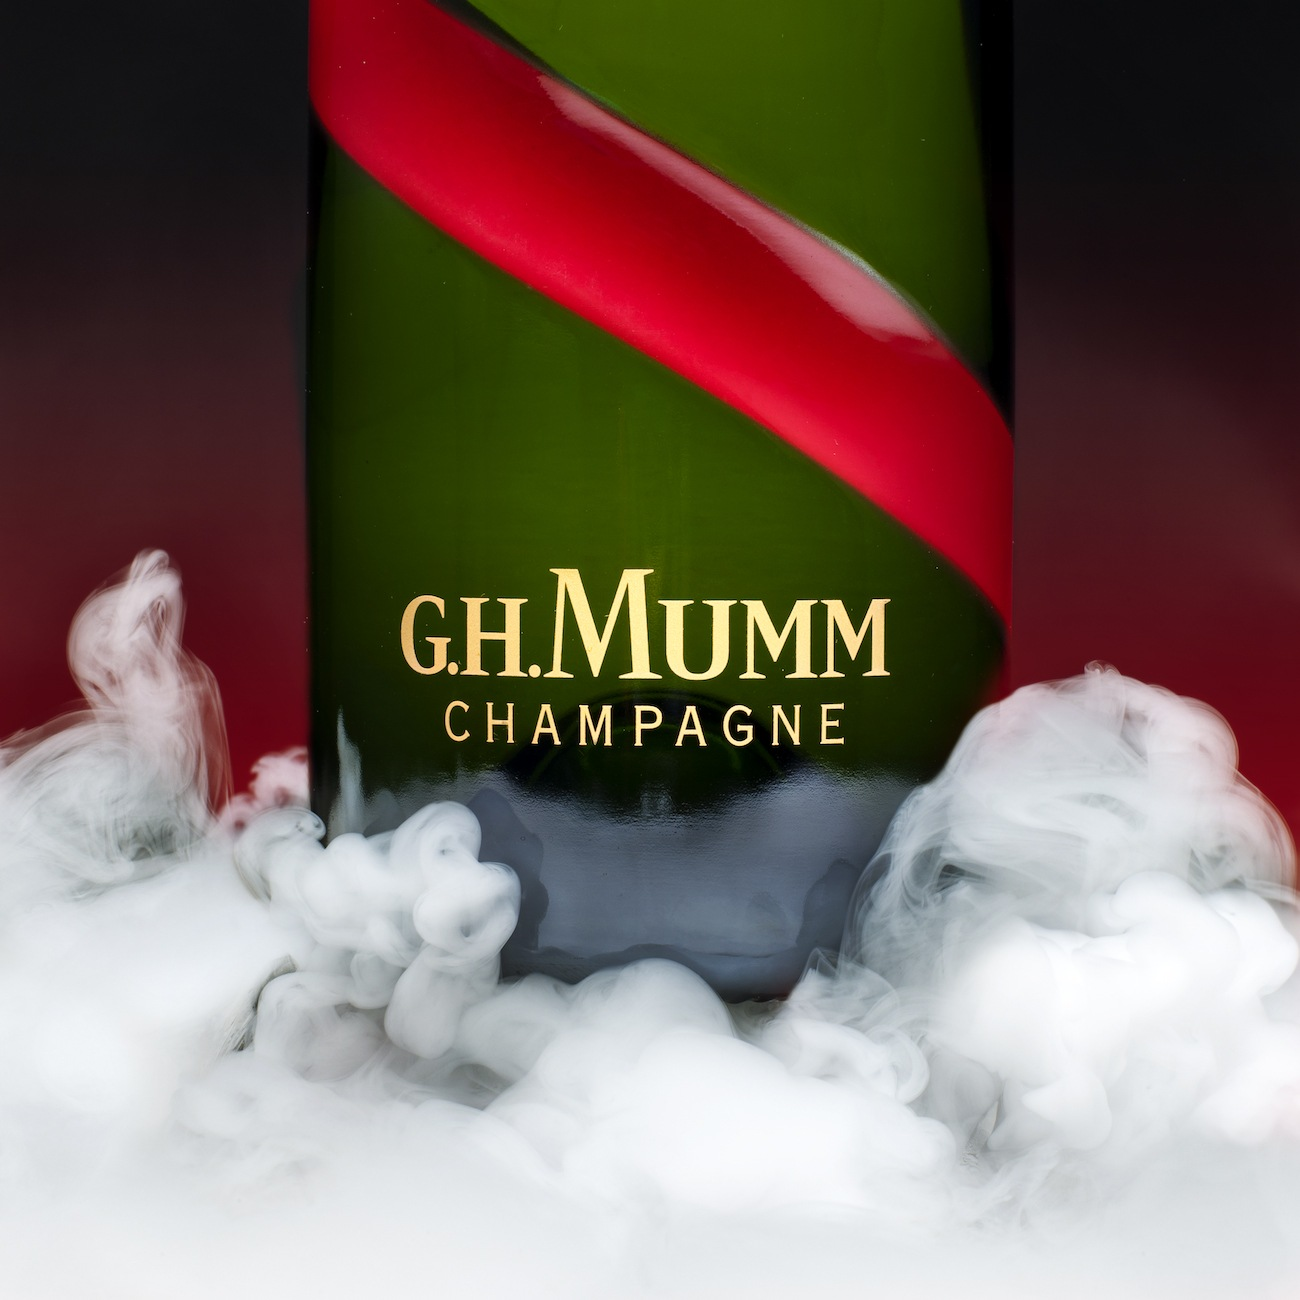 Mumm Grand Cordon - Antoine Peltier x Braaxe - Direction artistique